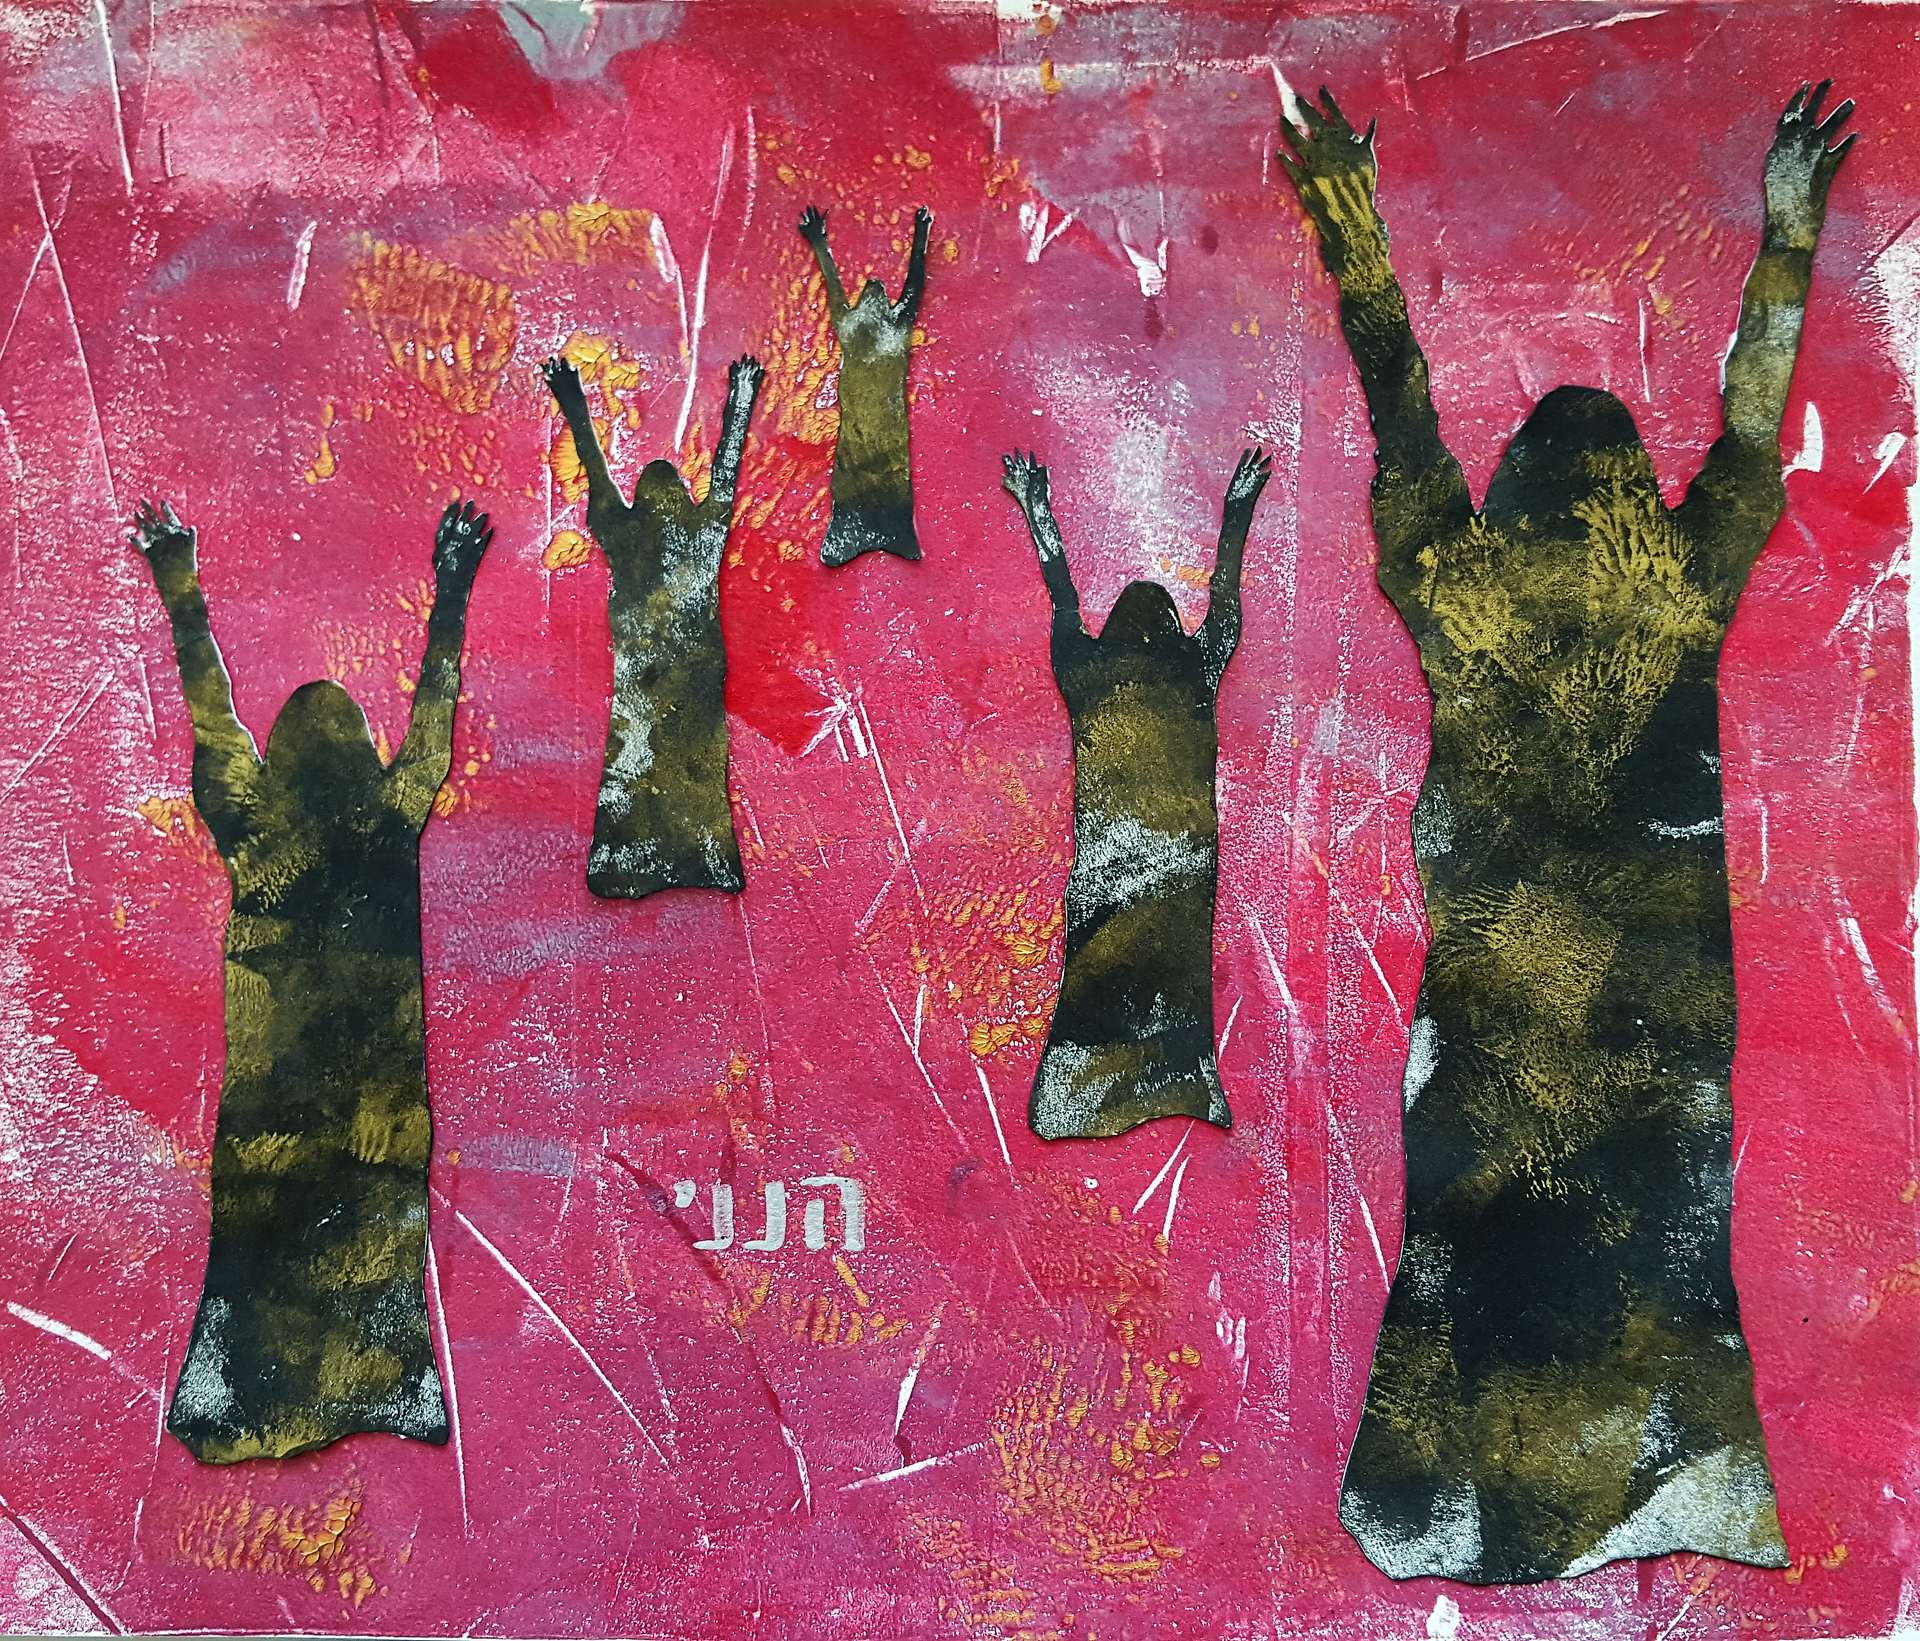 Hineni - All the Women Call Out: Here I am, Jeane Vogel